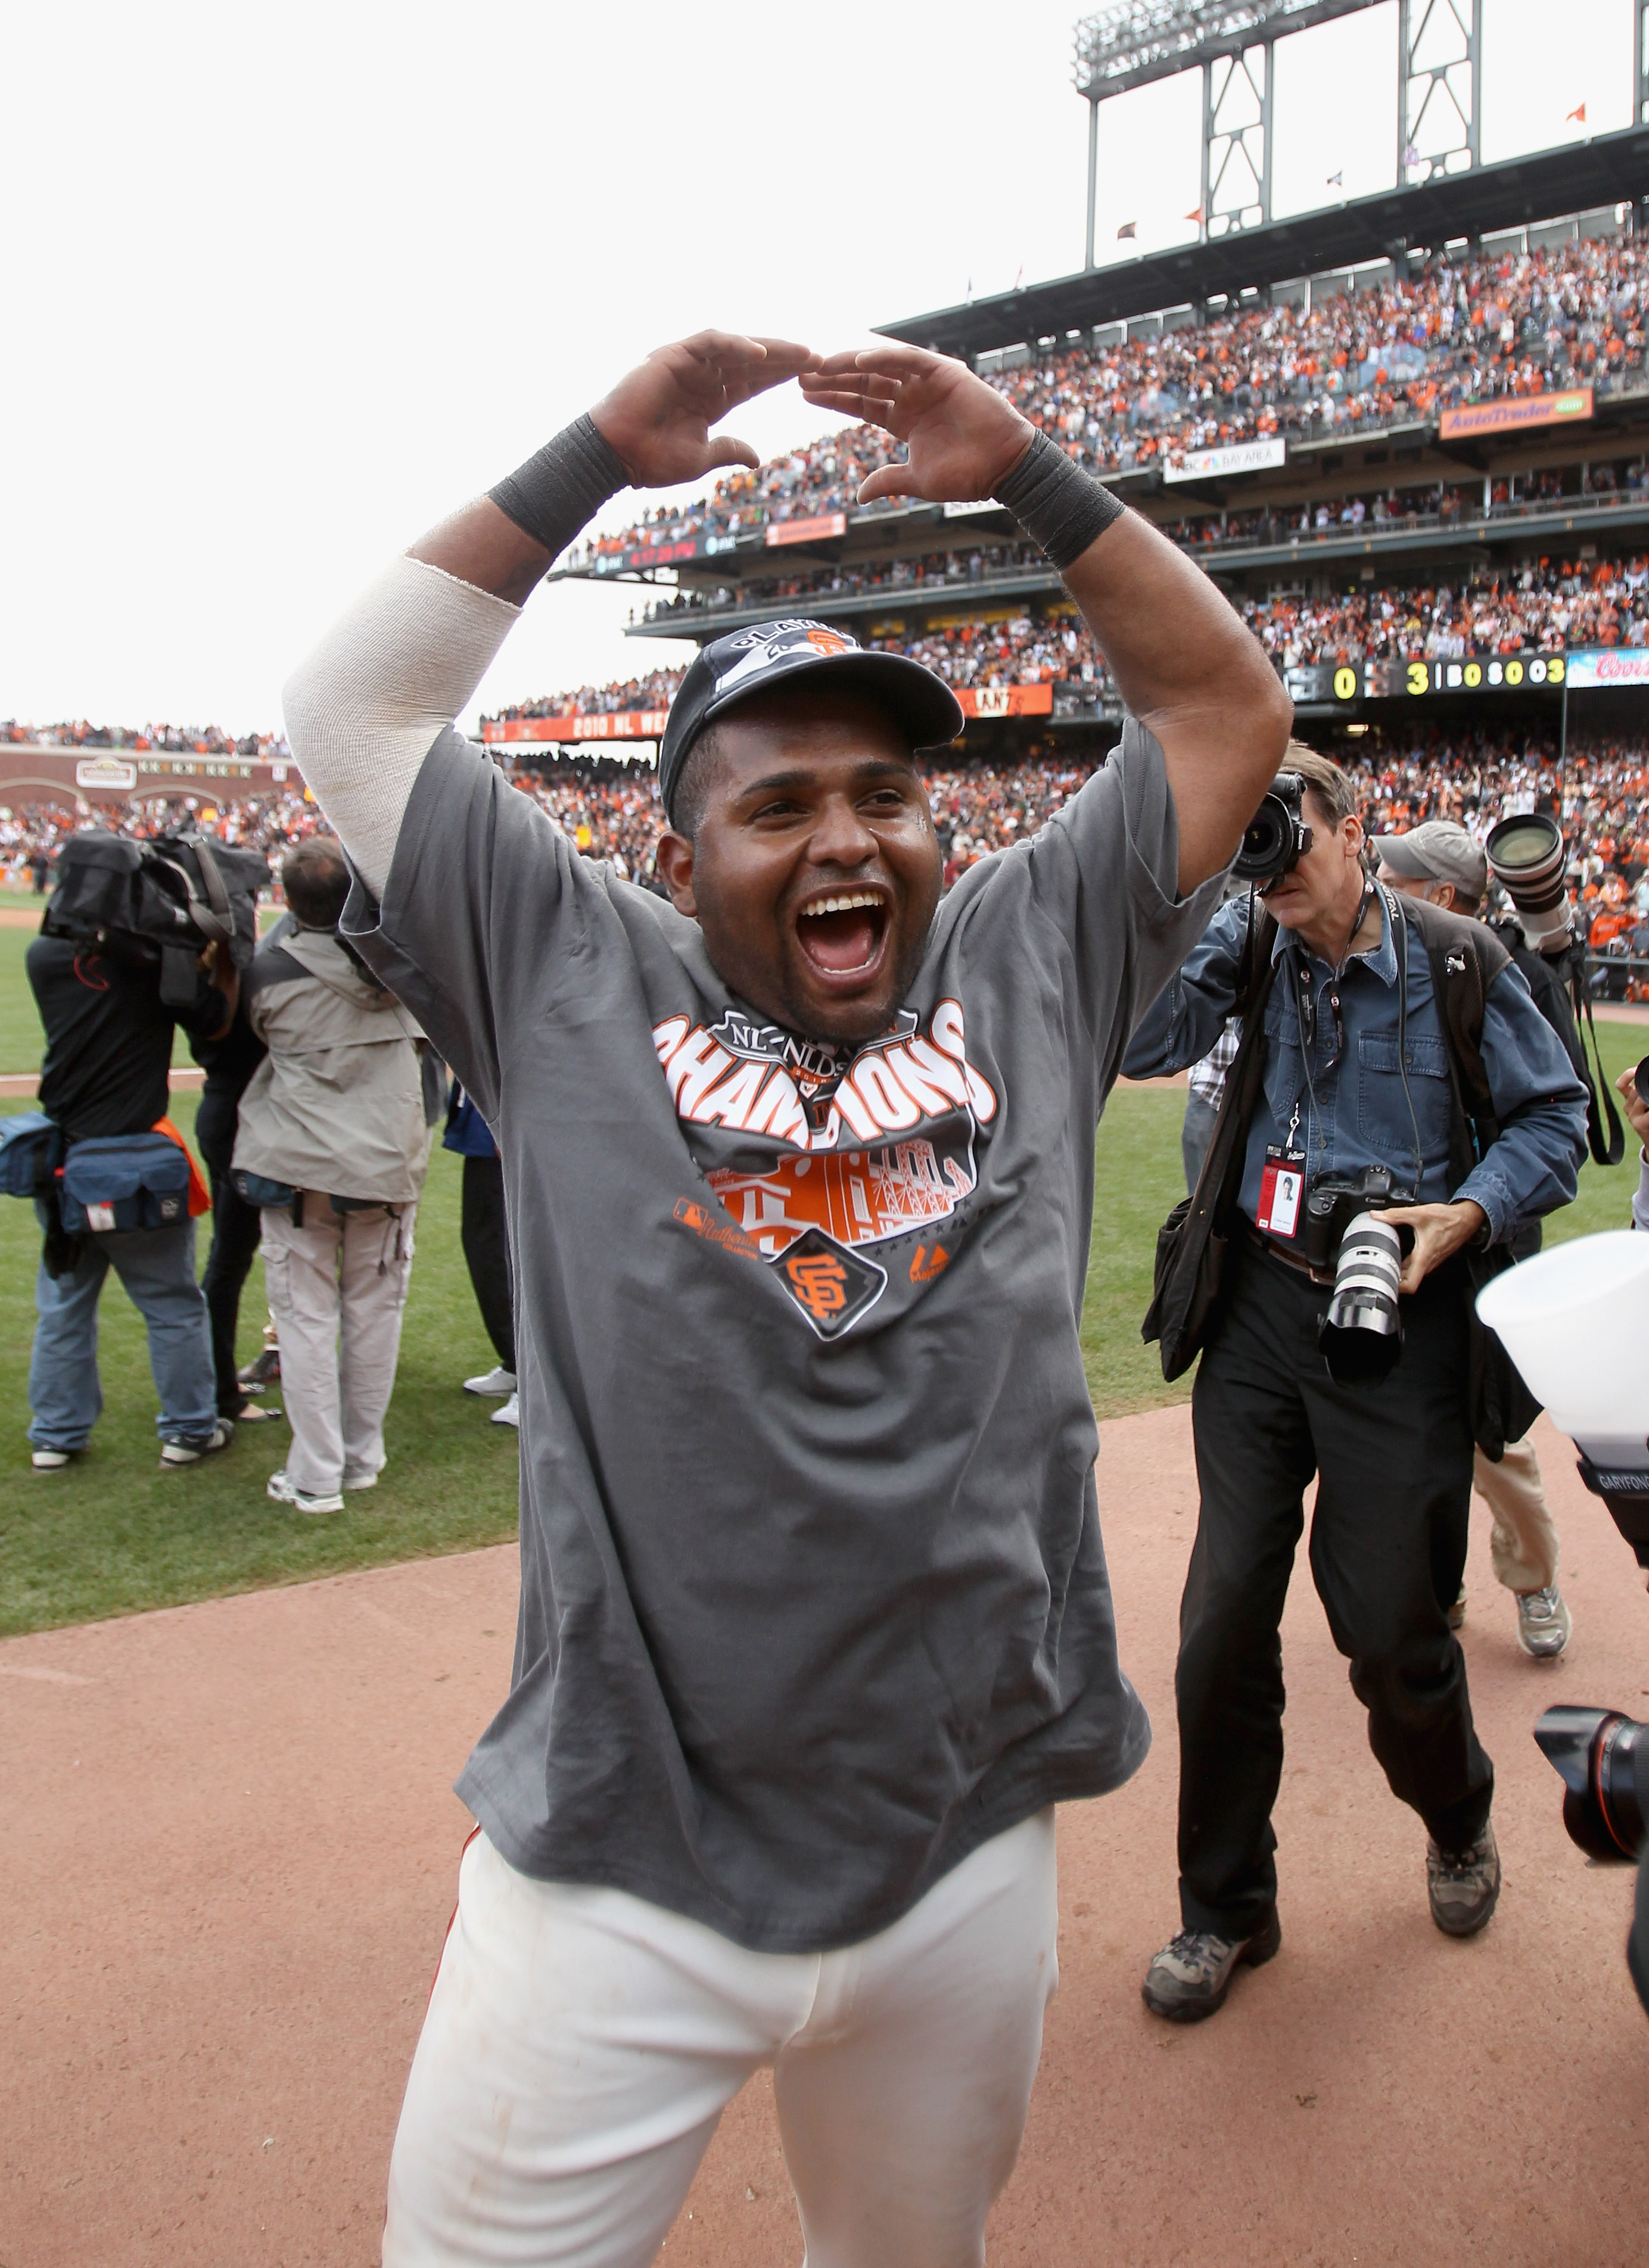 SAN FRANCISCO - OCTOBER 03:  Pablo Sandoval #48 of the San Francisco Giants celebrates after they beat the San Diego Padres to win the National League West Title at AT&T Park on October 3, 2010 in San Francisco, California.  (Photo by Ezra Shaw/Getty Imag